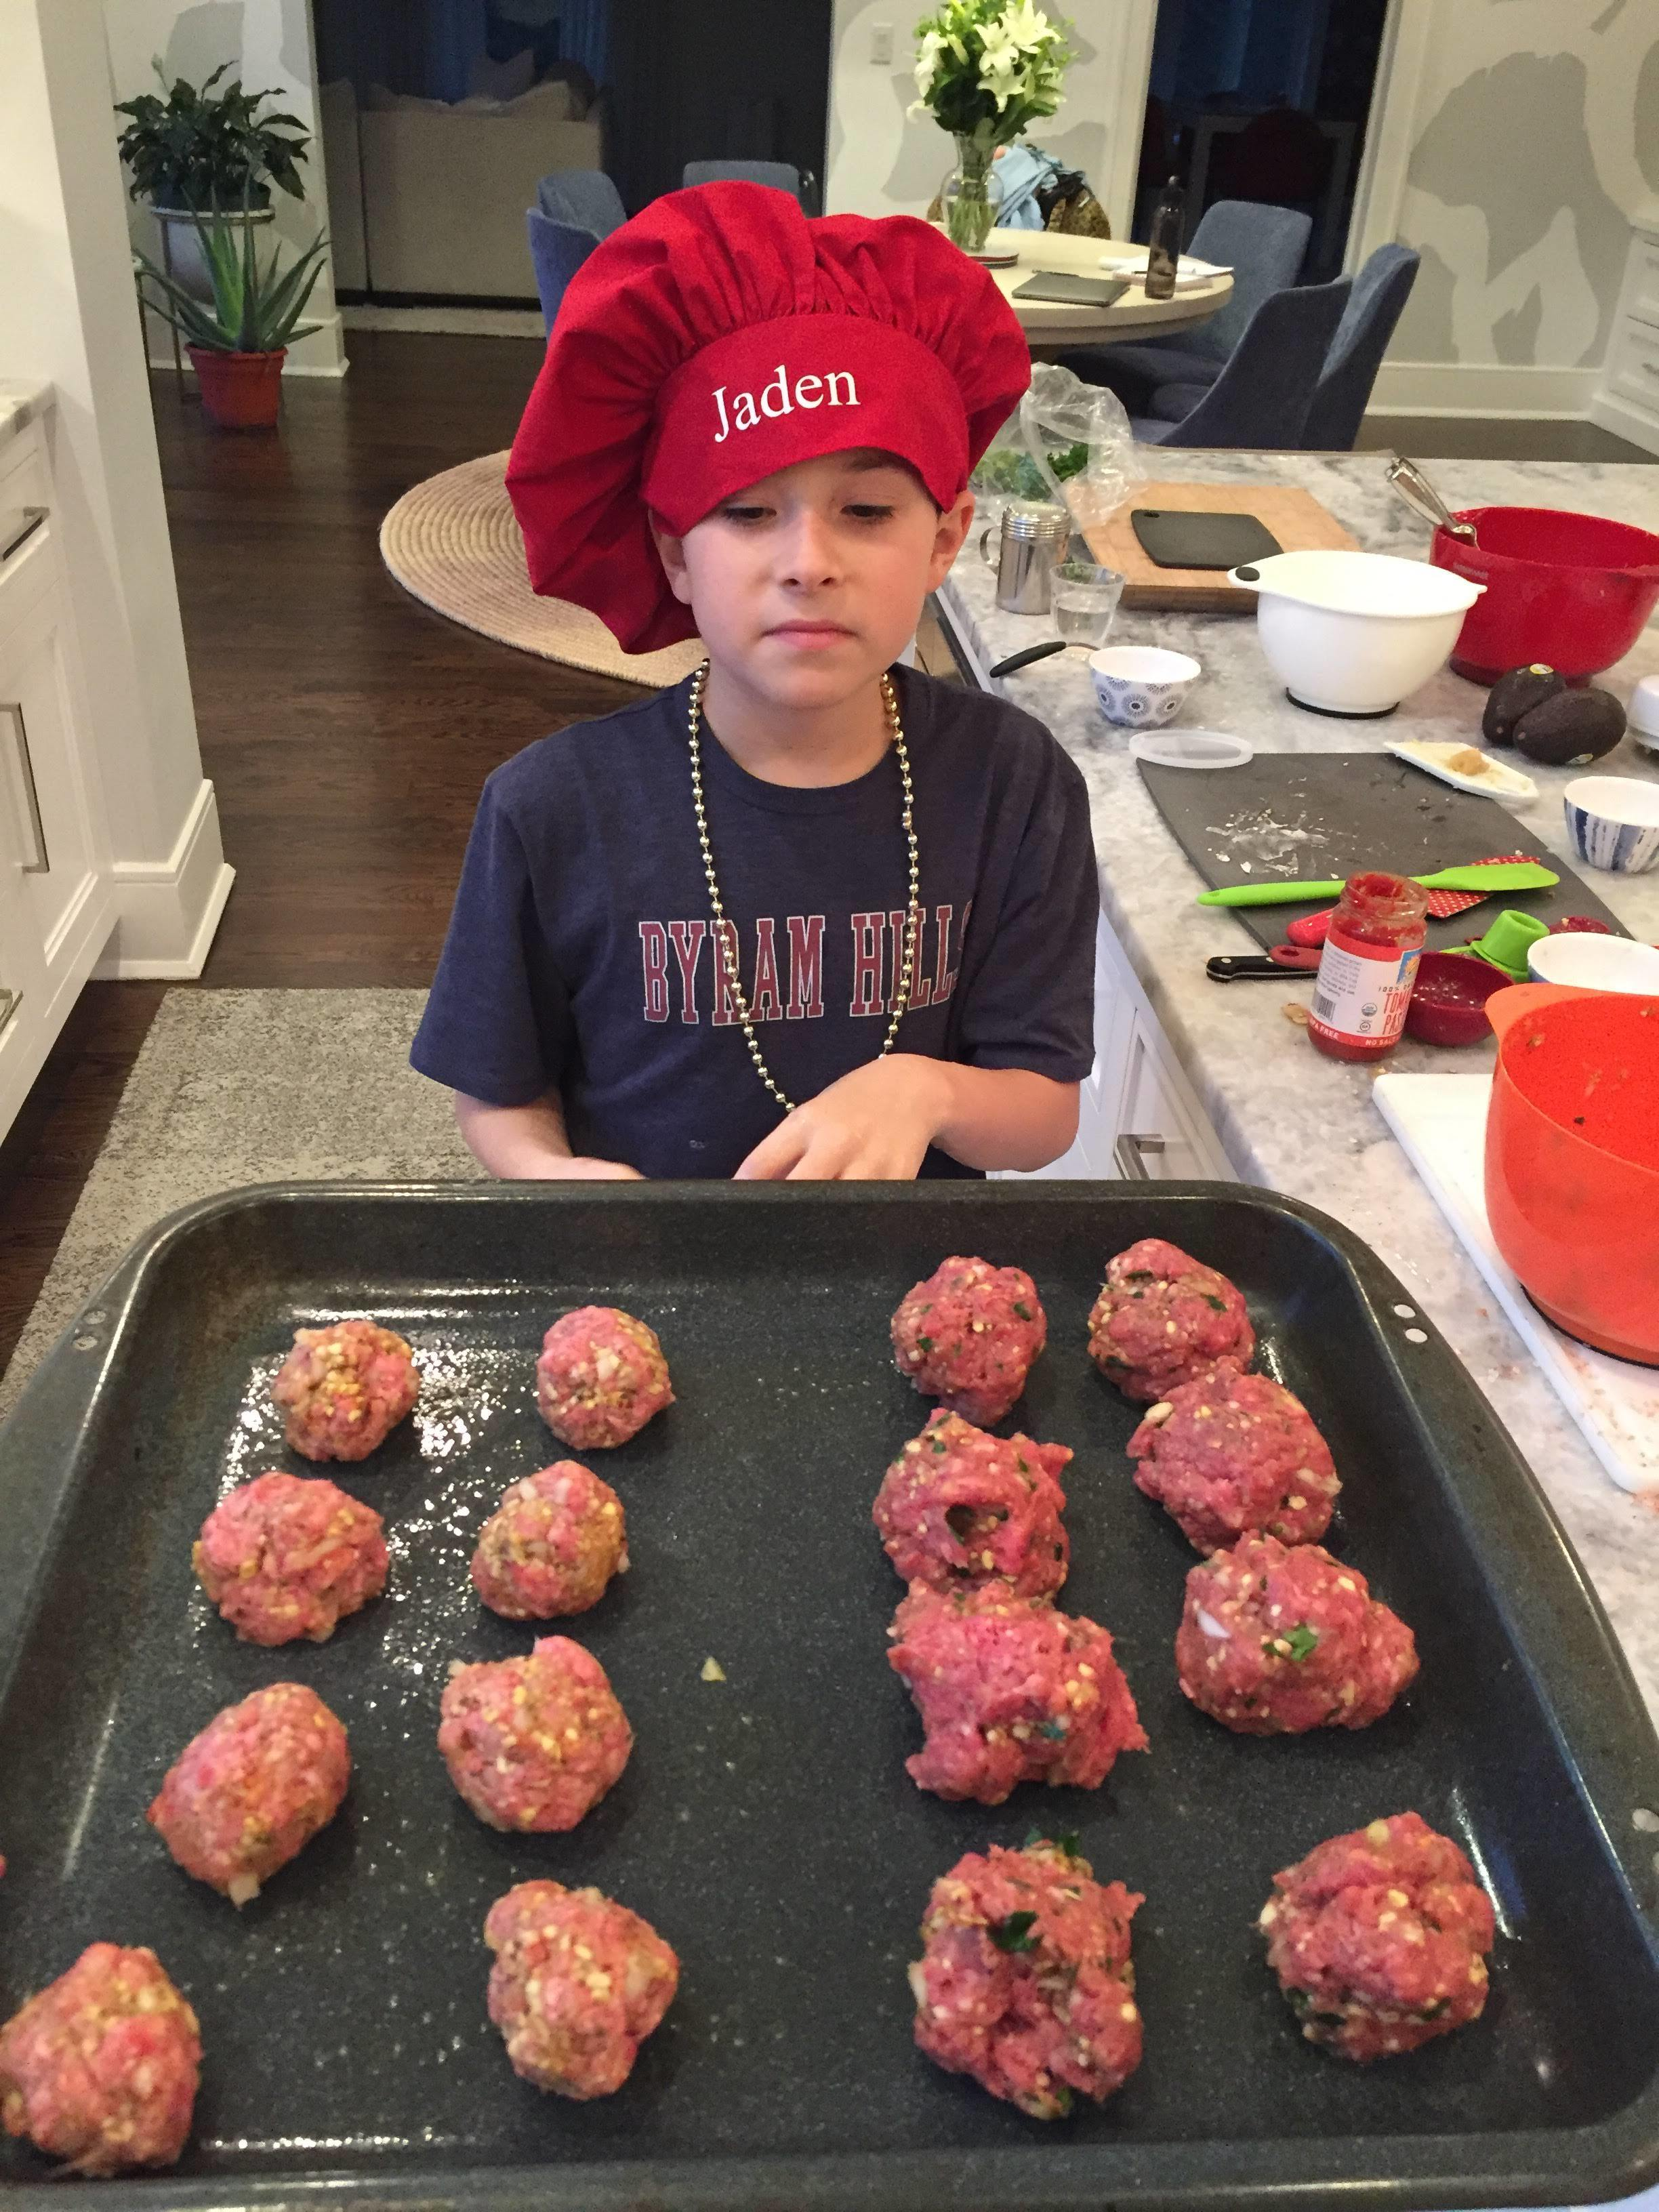 My students also love making meatballs!